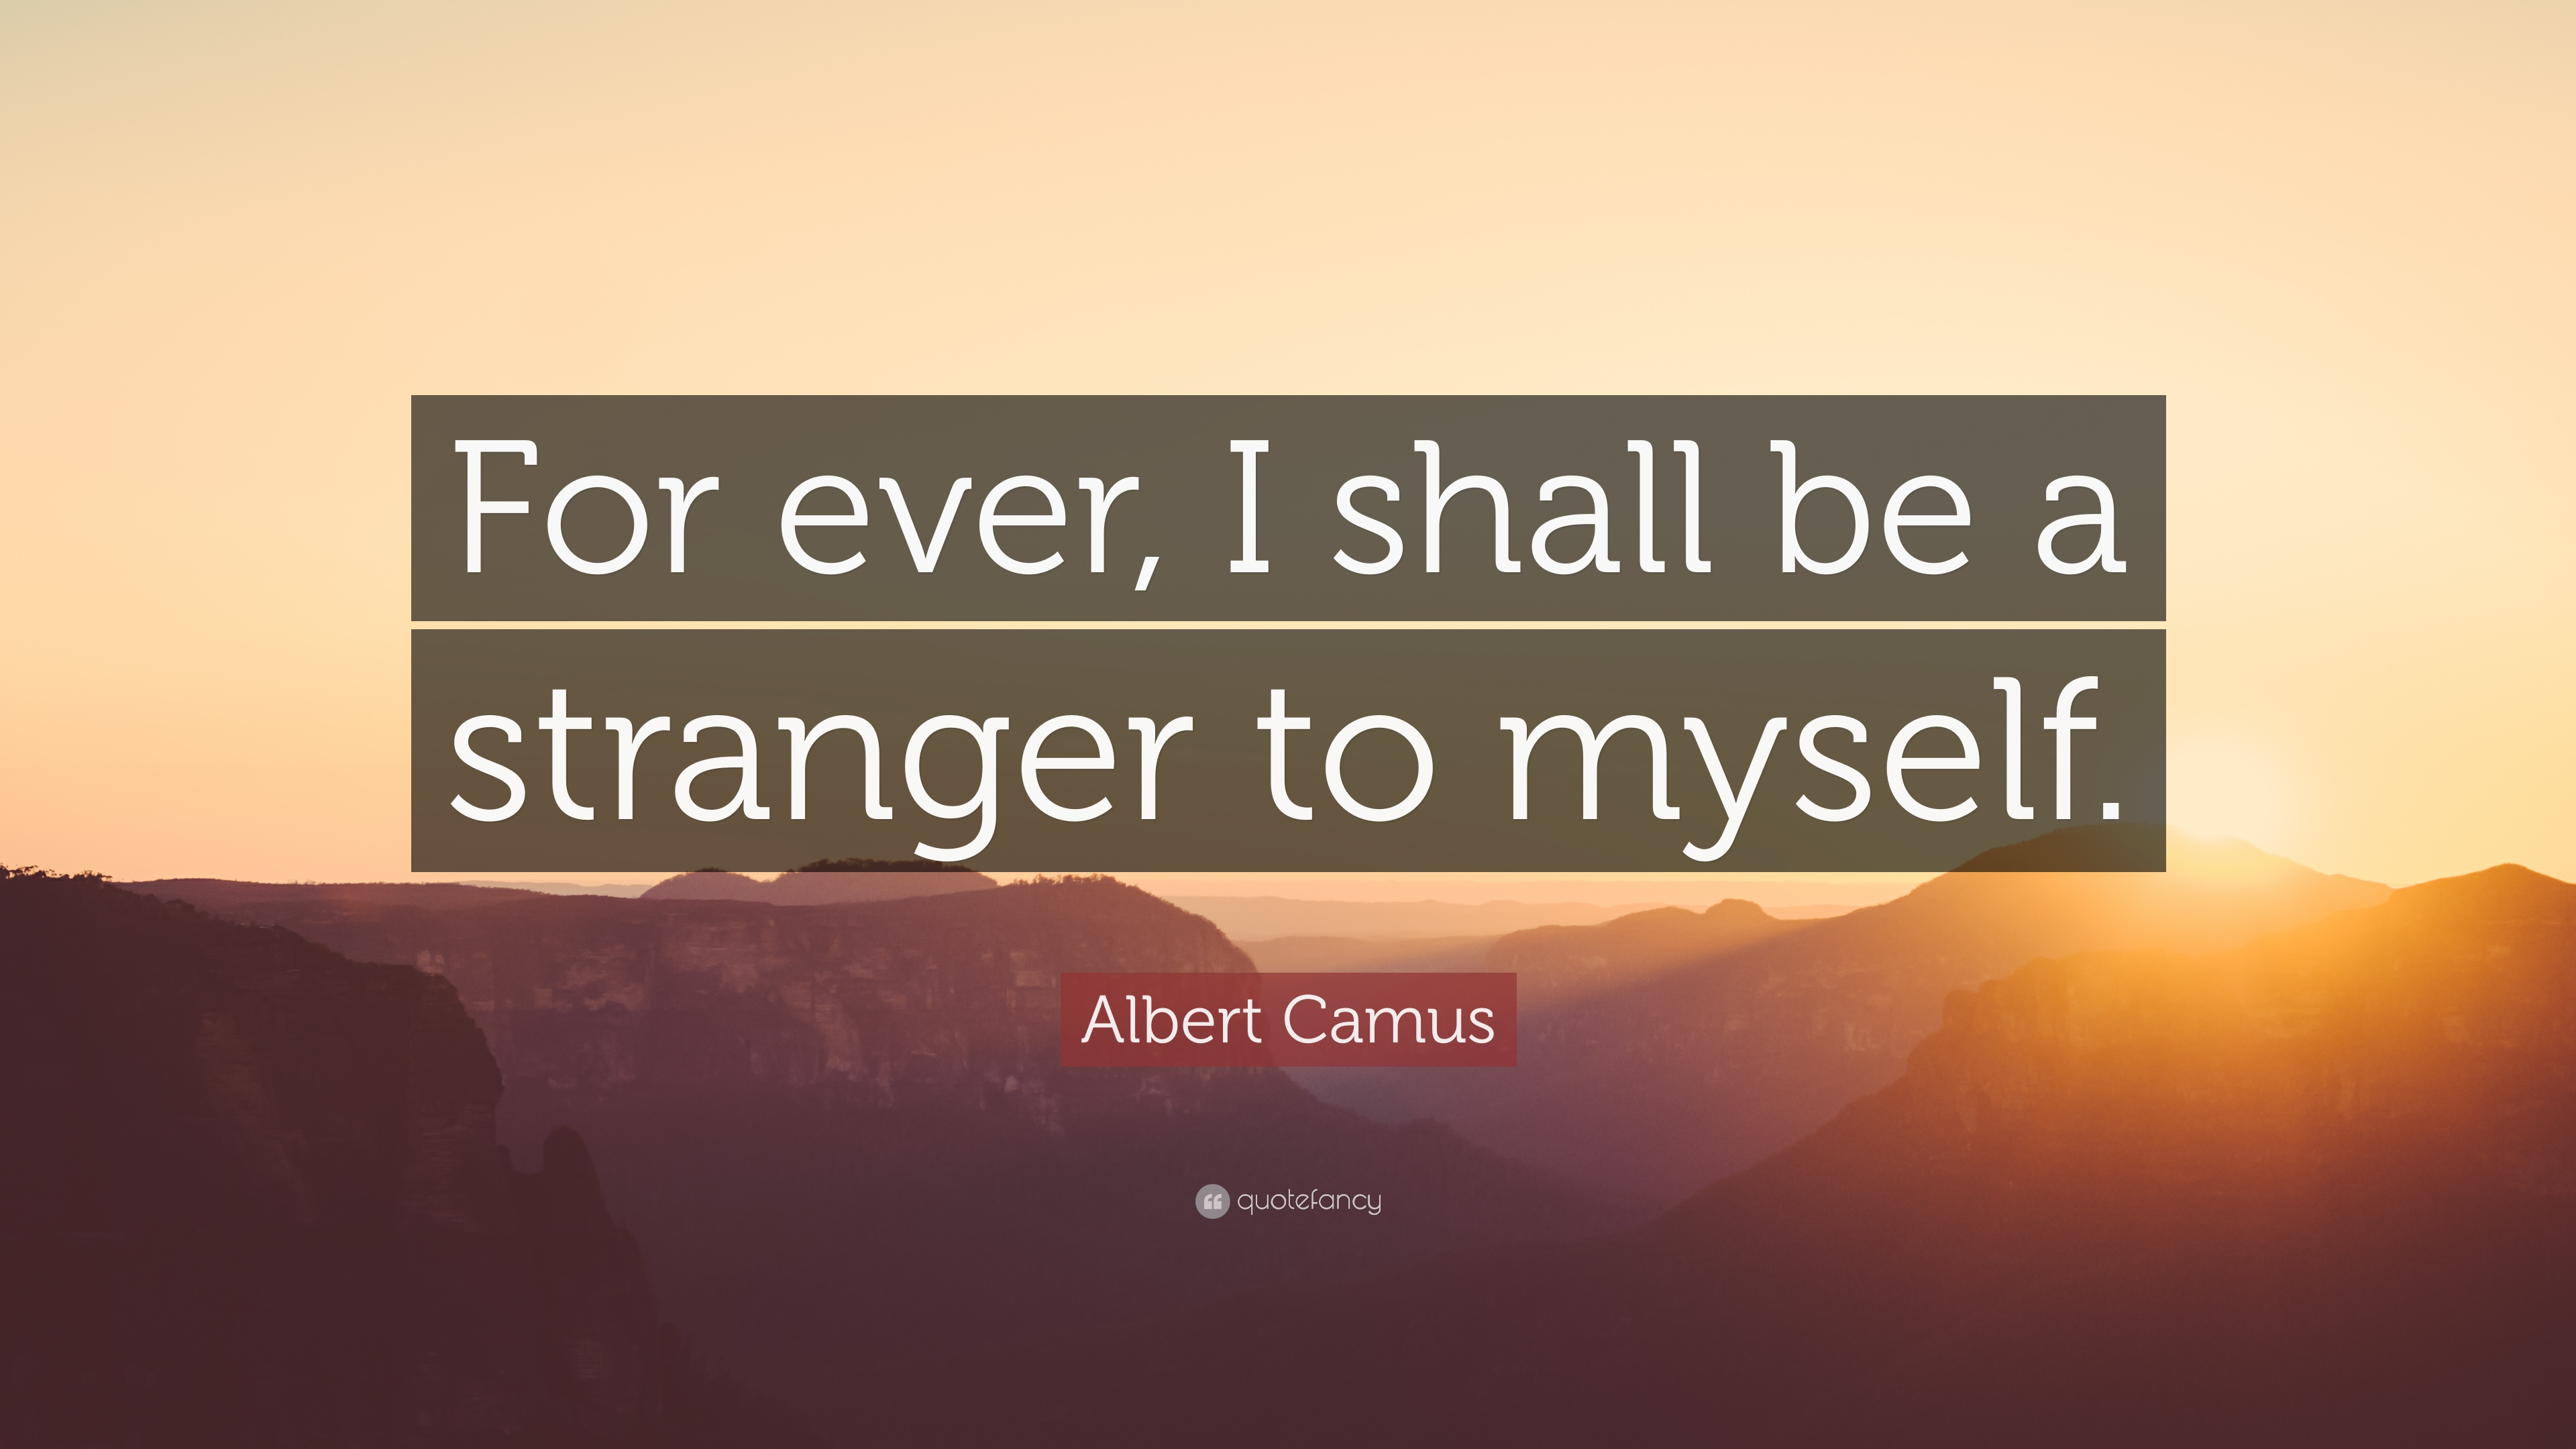 Albert Camus Quotes Wallpaper Albert Camus Quote For Ever I Shall Be A Stranger To